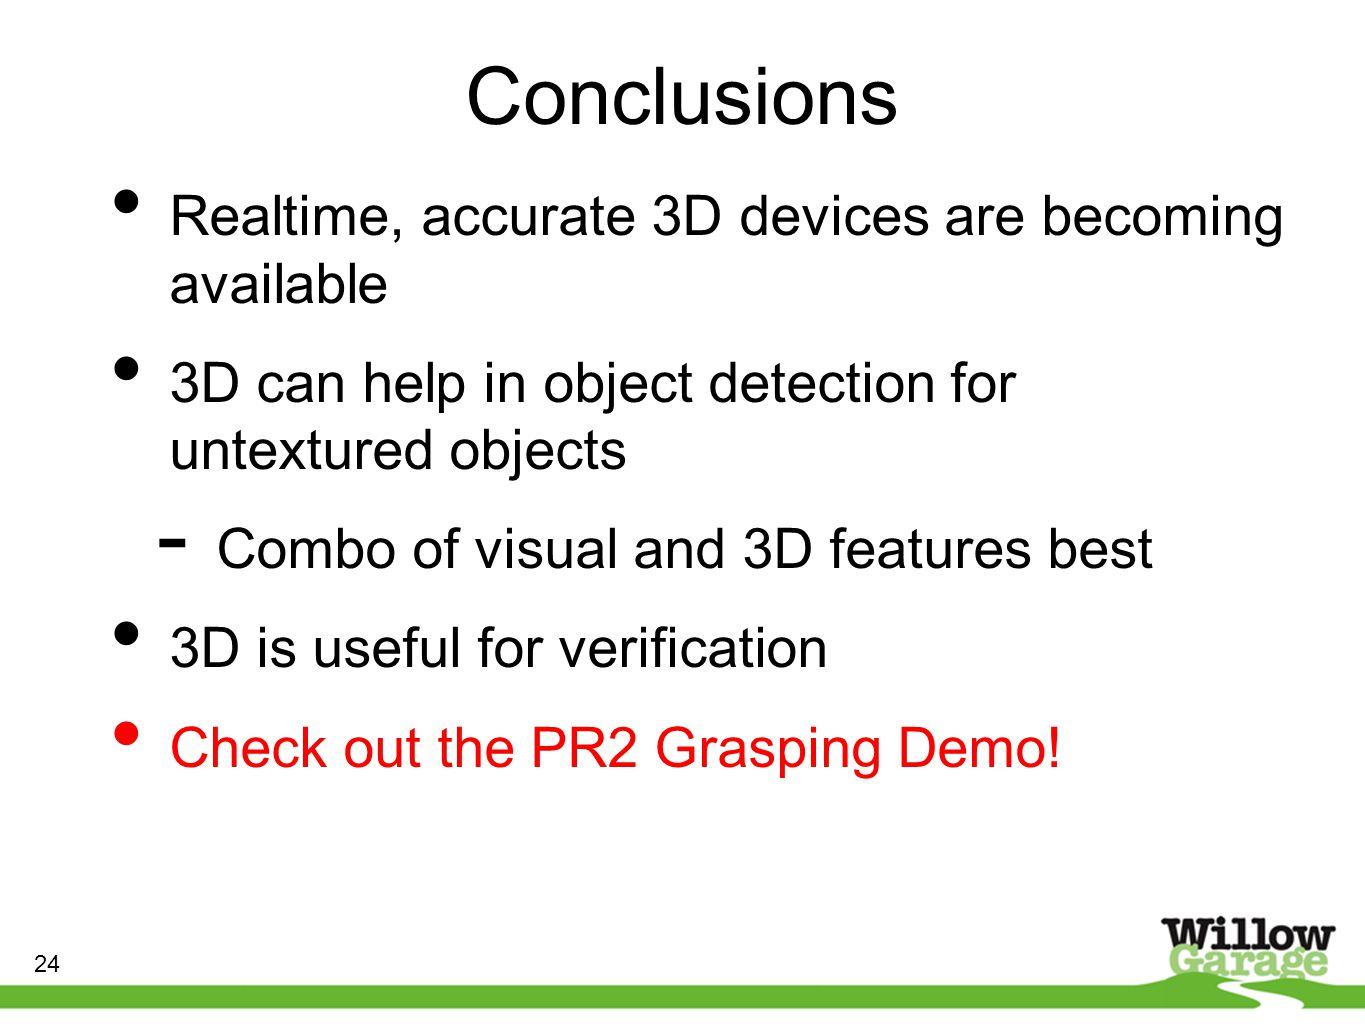 Conclusions Realtime, accurate 3D devices are becoming available 3D can help in object detection for untextured objects - Combo of visual and 3D features best 3D is useful for verification Check out the PR2 Grasping Demo.